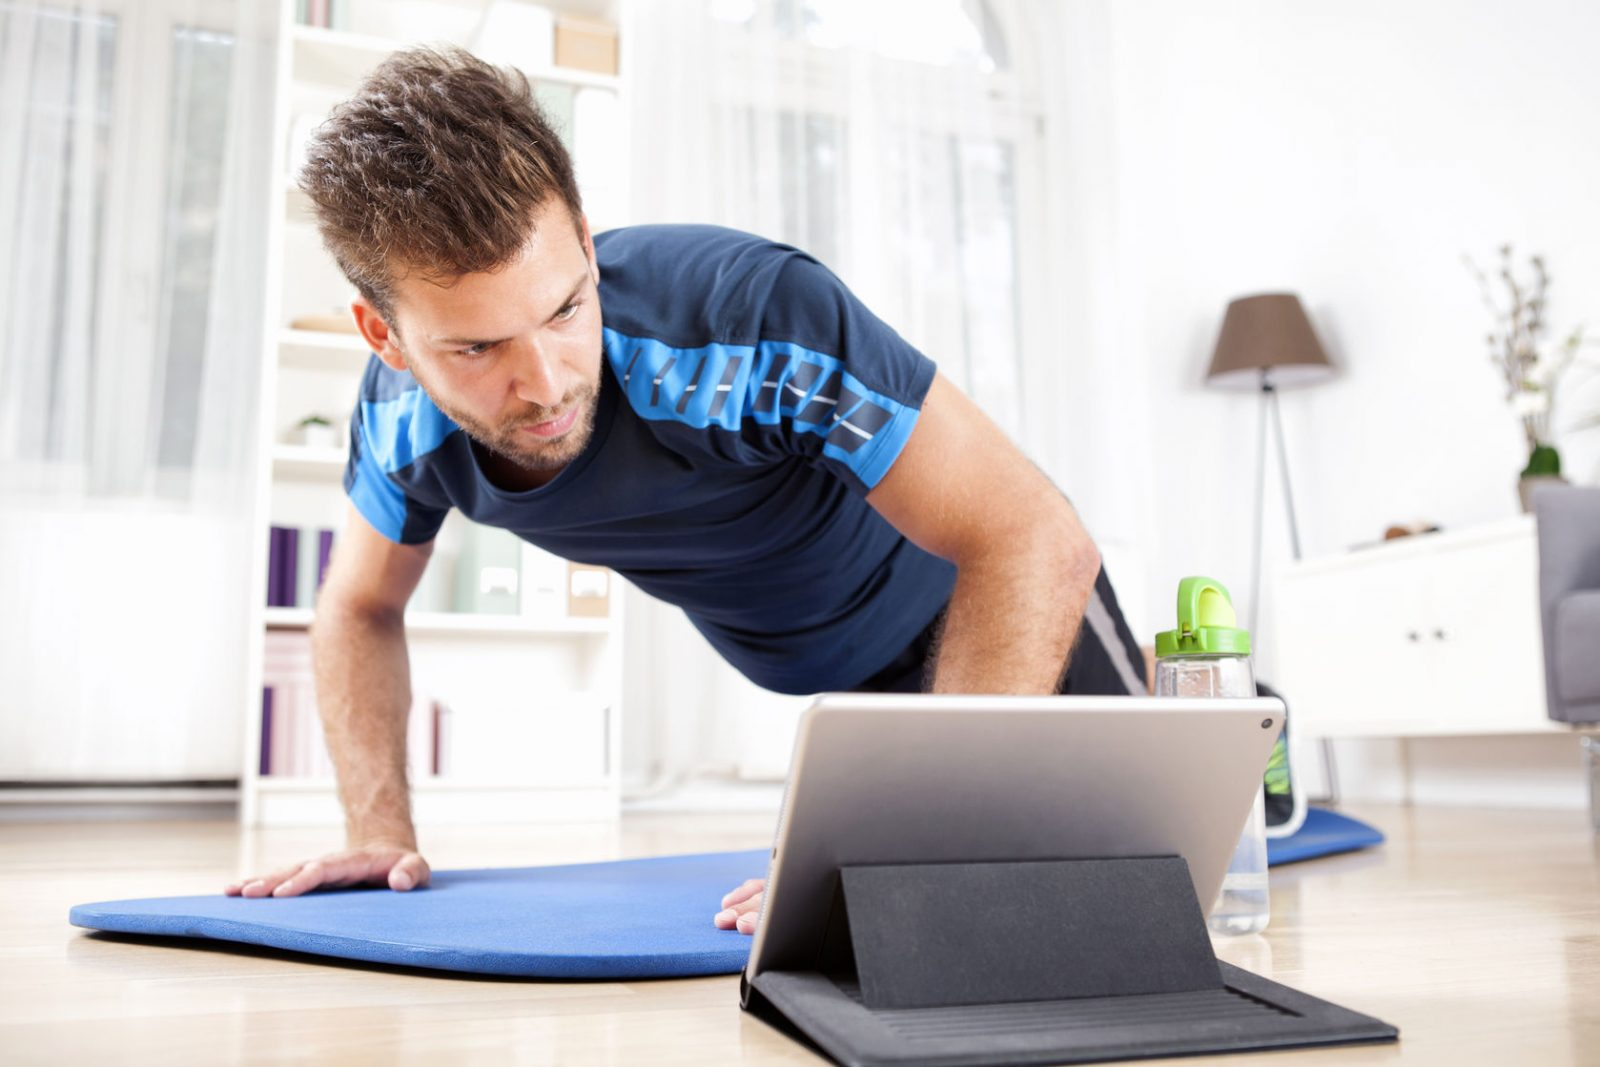 51546198 - athletic young man doing a planking exercise at home while watching movie on his tablet computer.